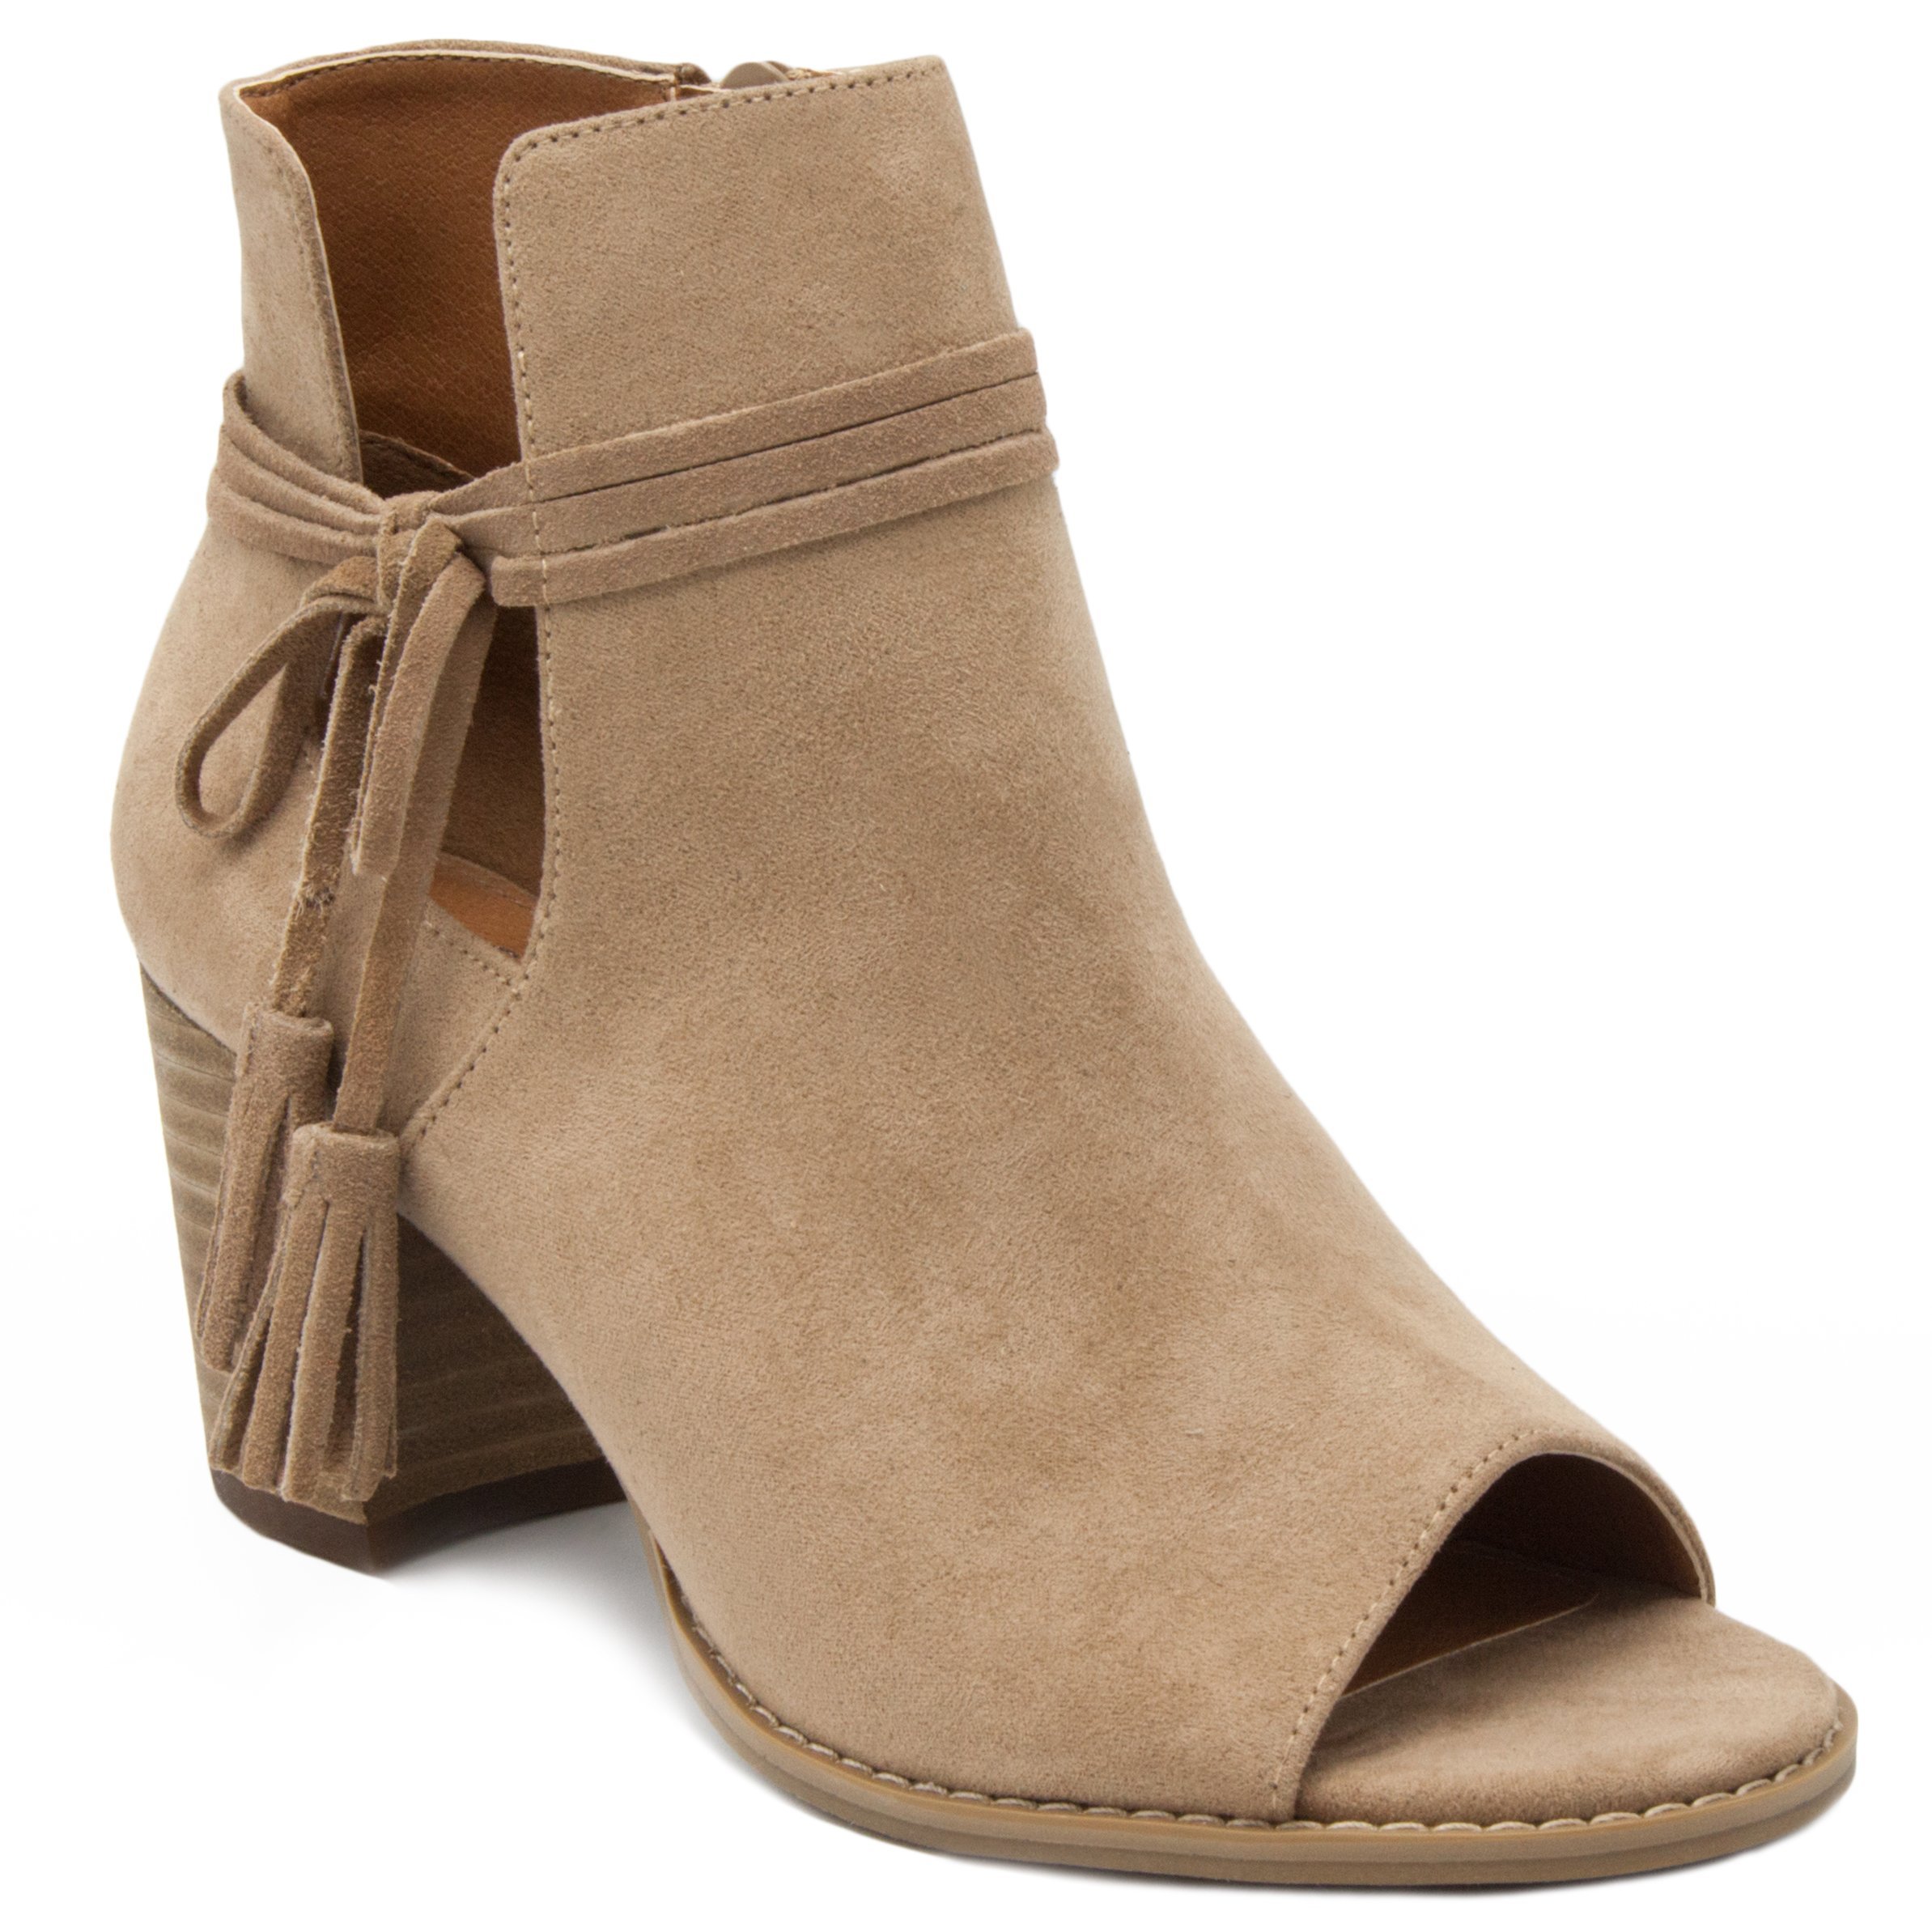 Mari A Women's Alana Tasseled Ankle Boot Peep Toe Bootie 11 Taupe Faux Suede